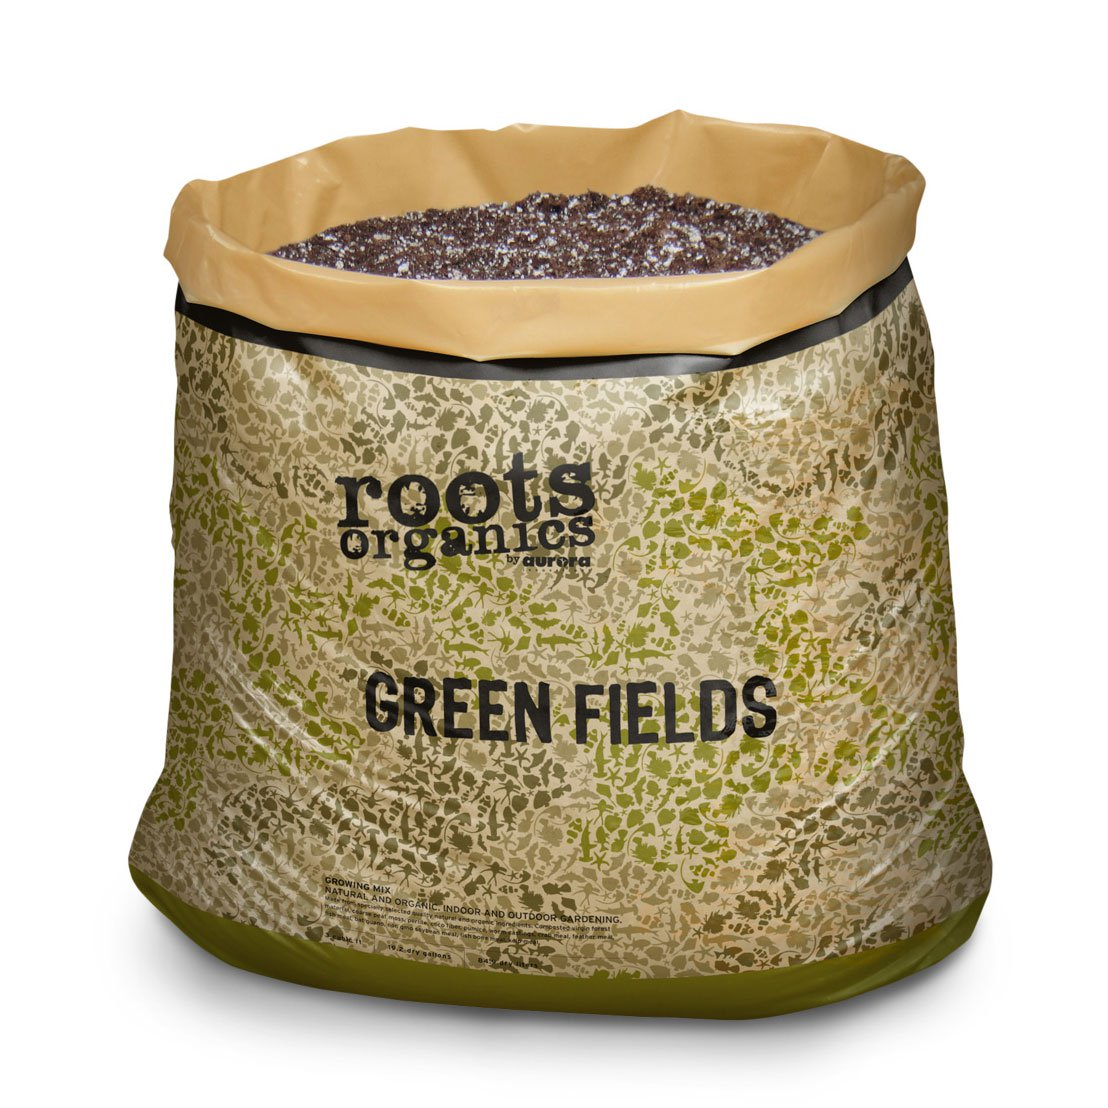 Roots Organics ROGF Hydroponics Green Fields Gardening Potting Soil, 1.5 cu ft